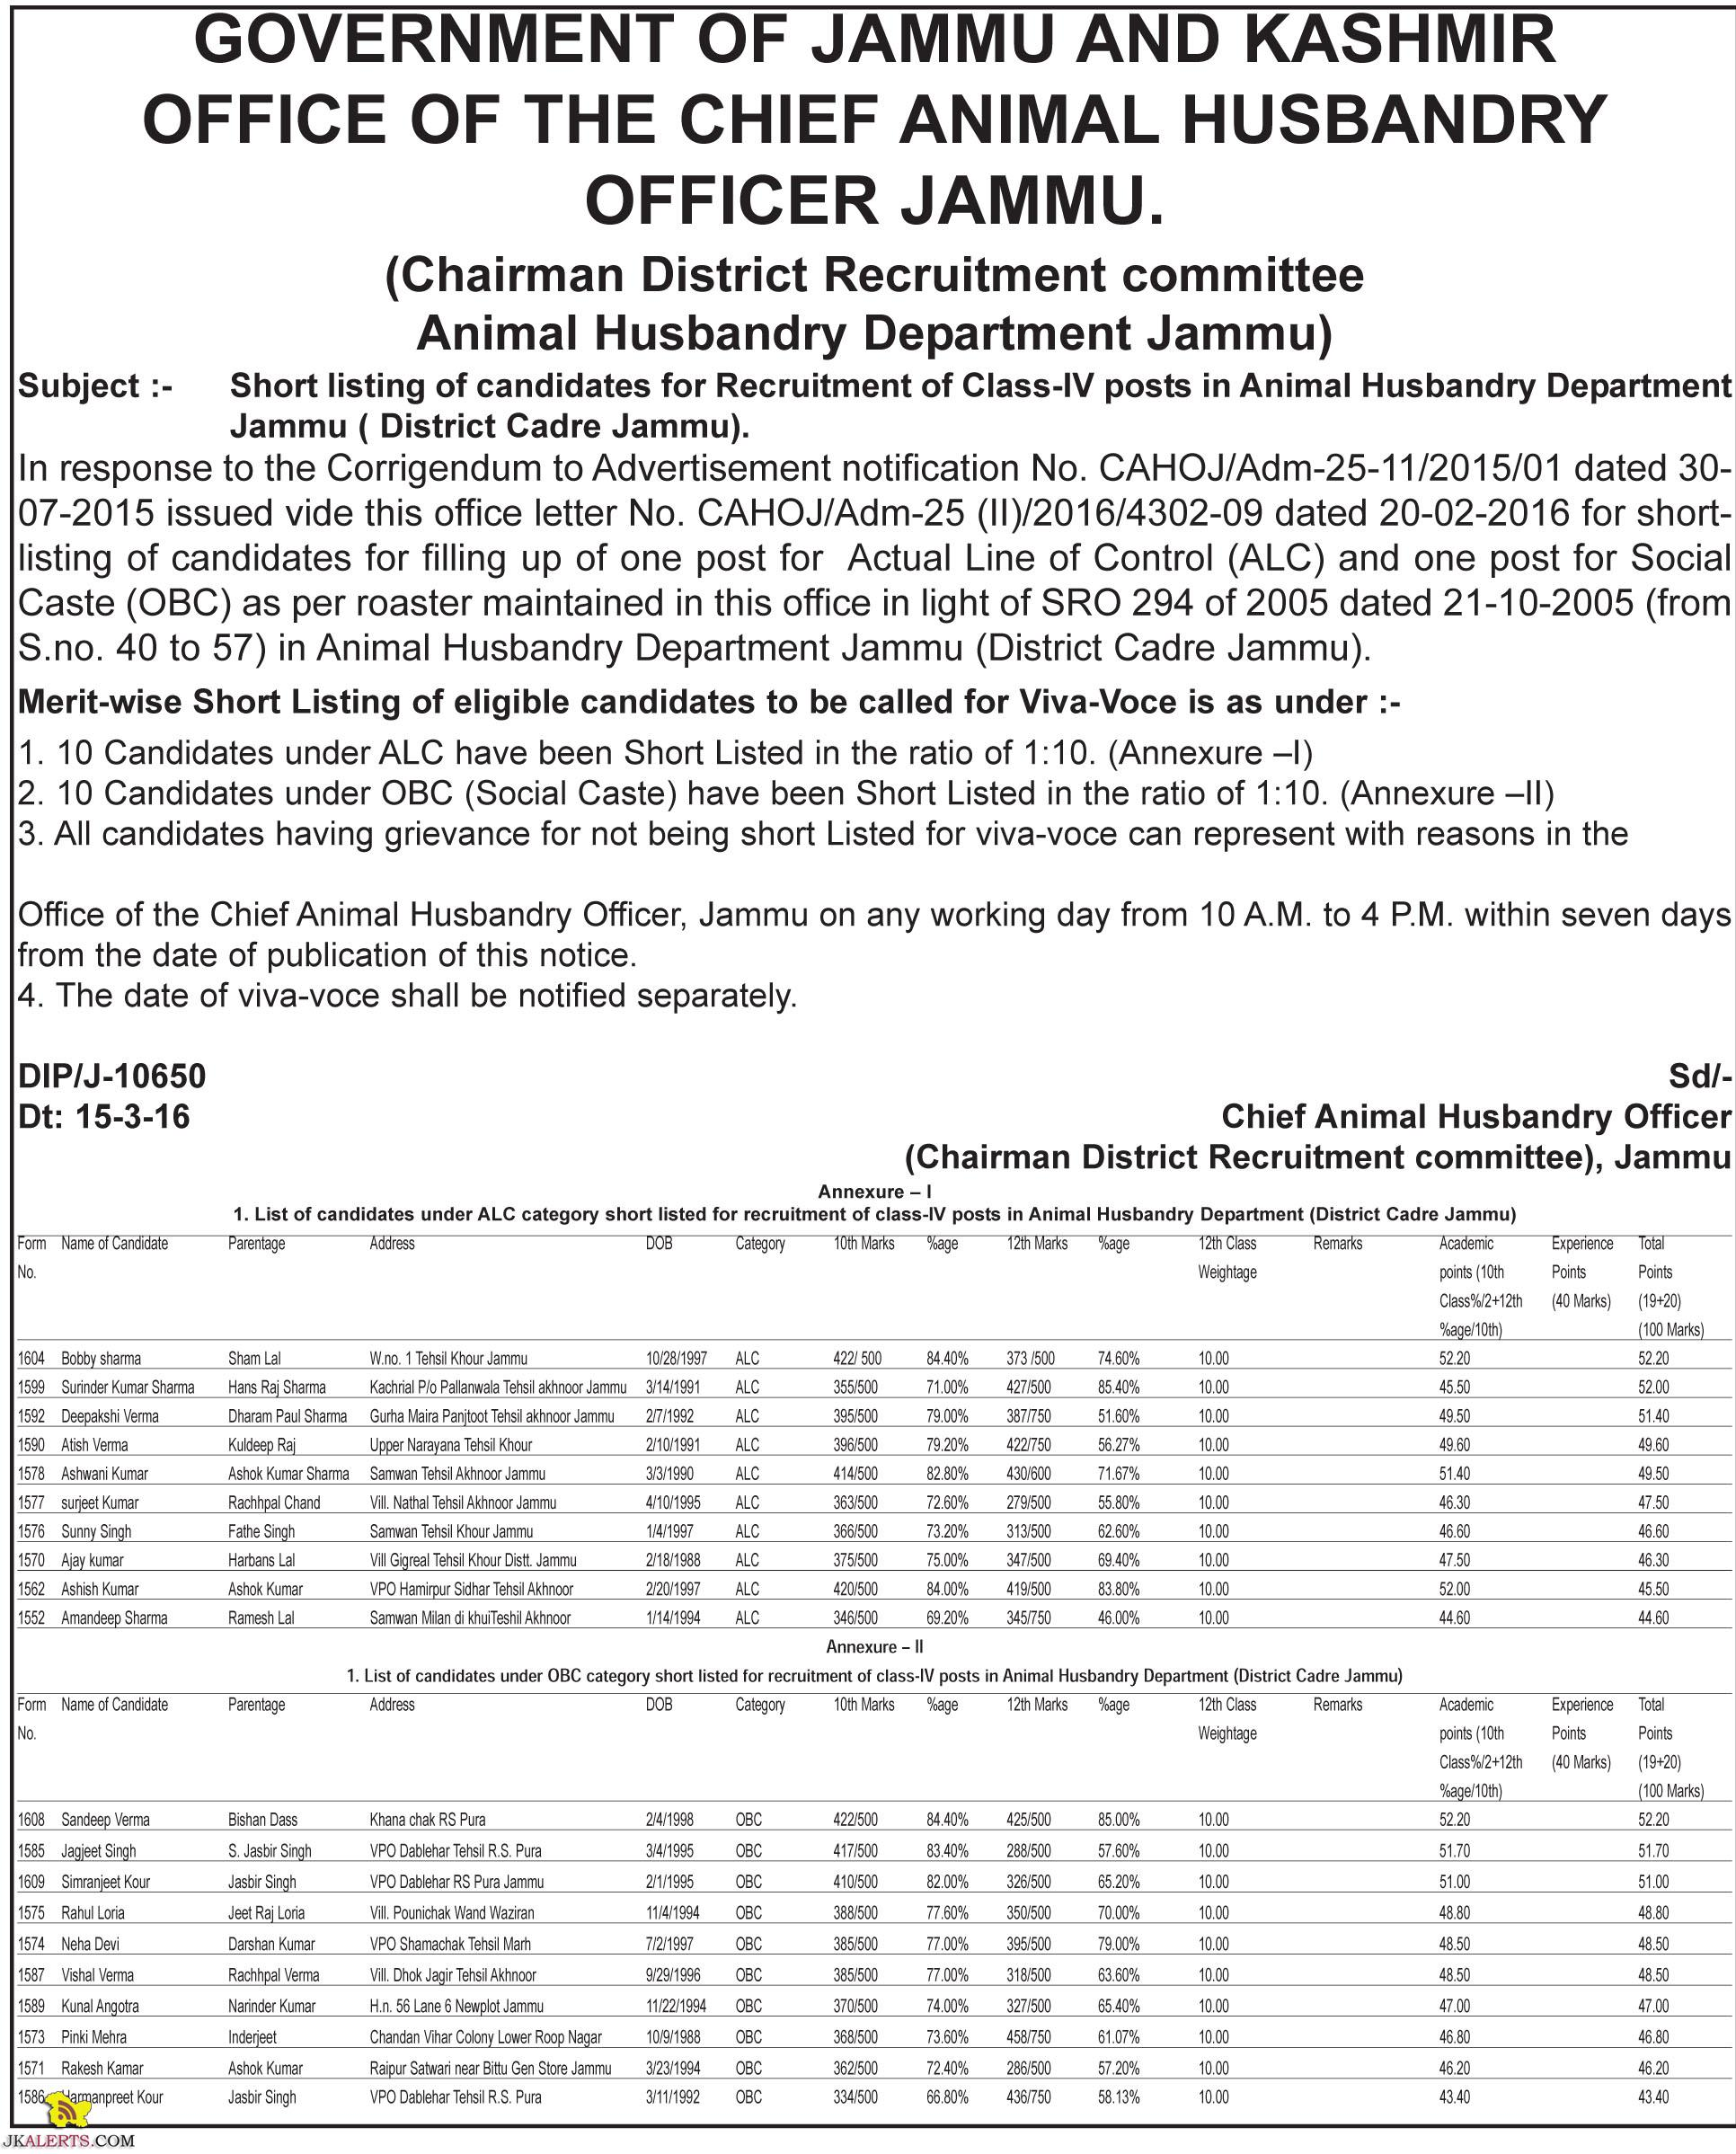 Short listing candidates for Class-IV posts in Animal Husbandry Department Jammu